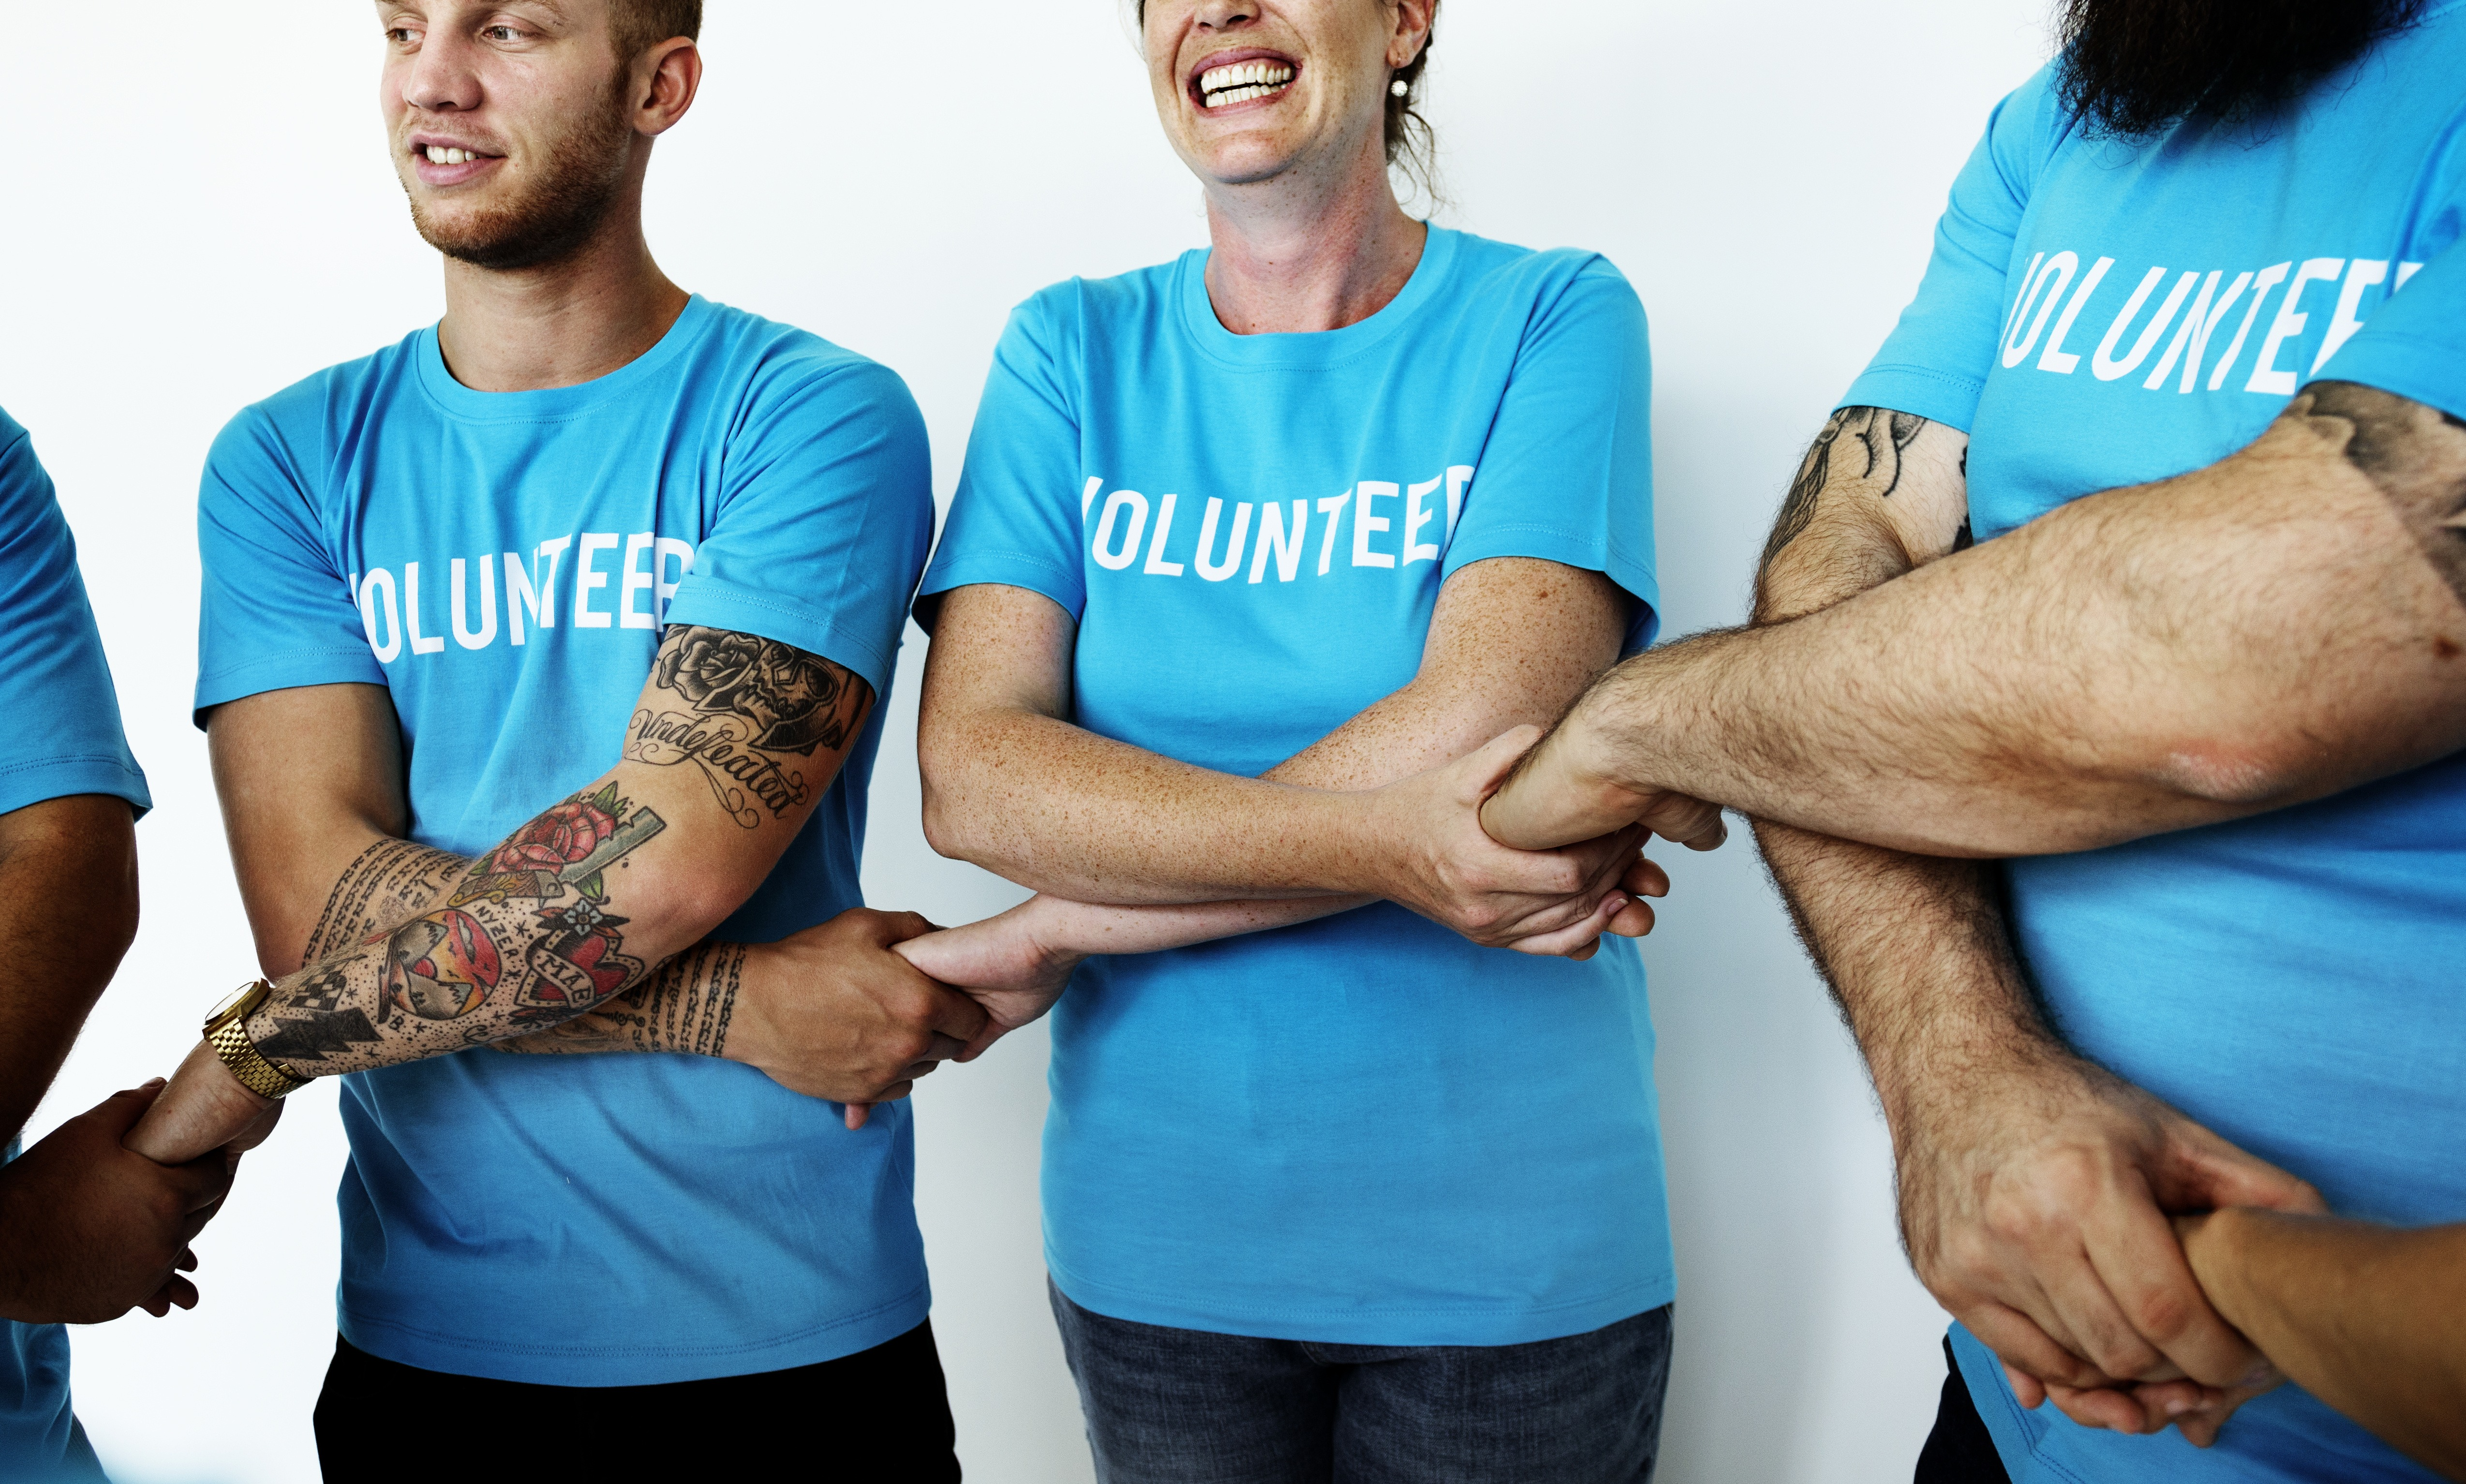 10 Tips for Volunteering Wisely